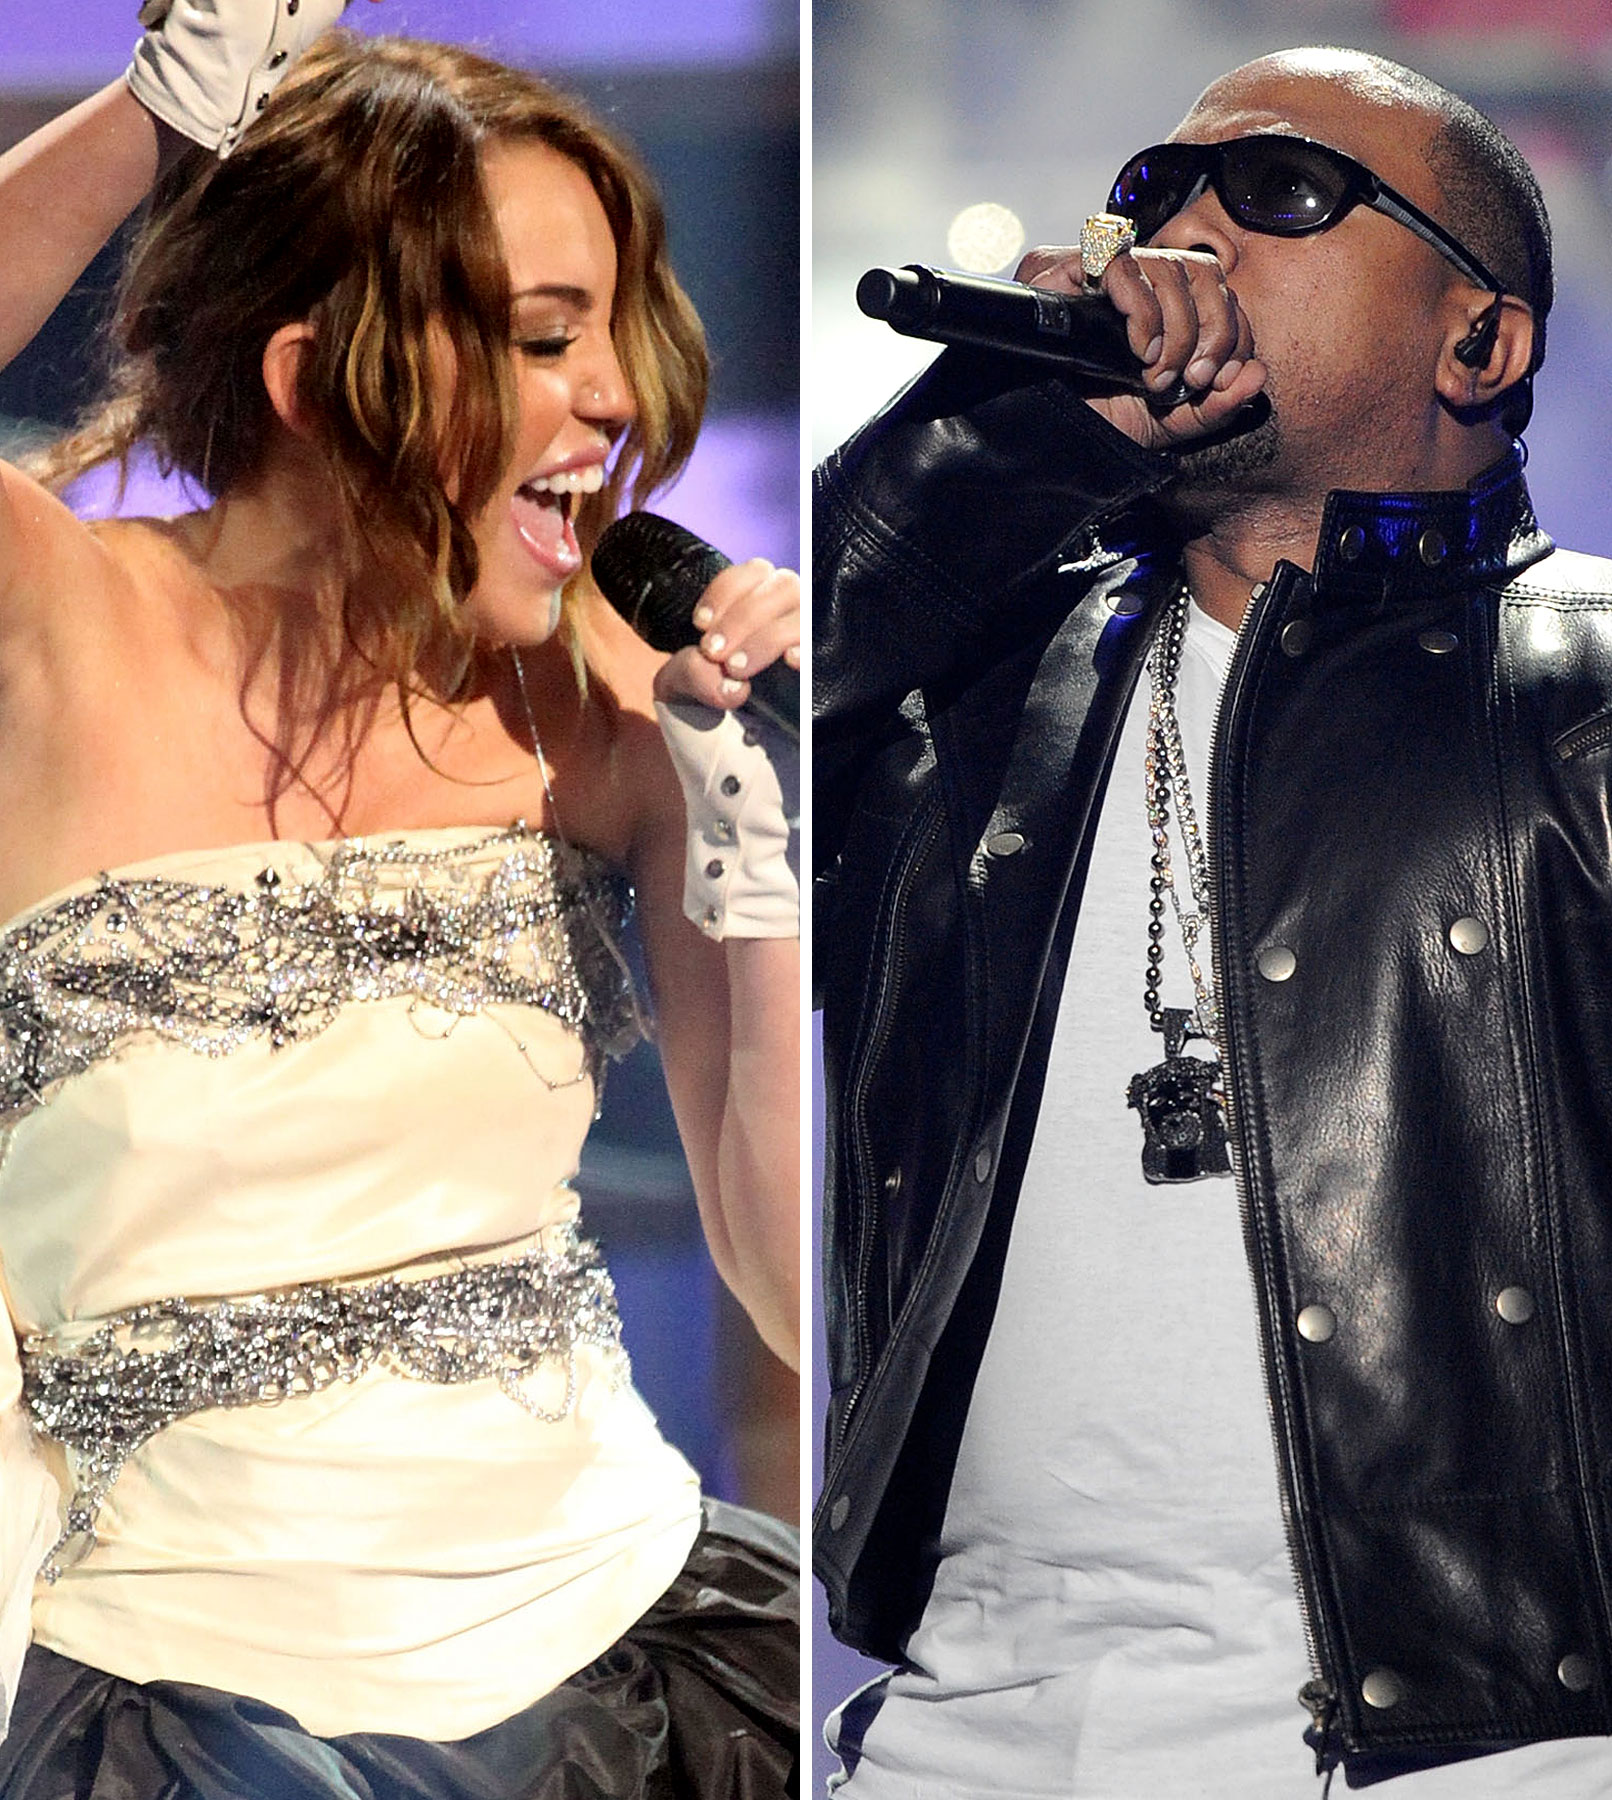 New Miley Cyrus/Timbaland Collaboration Debuts; Miley to Claim She's Never Listened to Timabaland in 3…2…1…